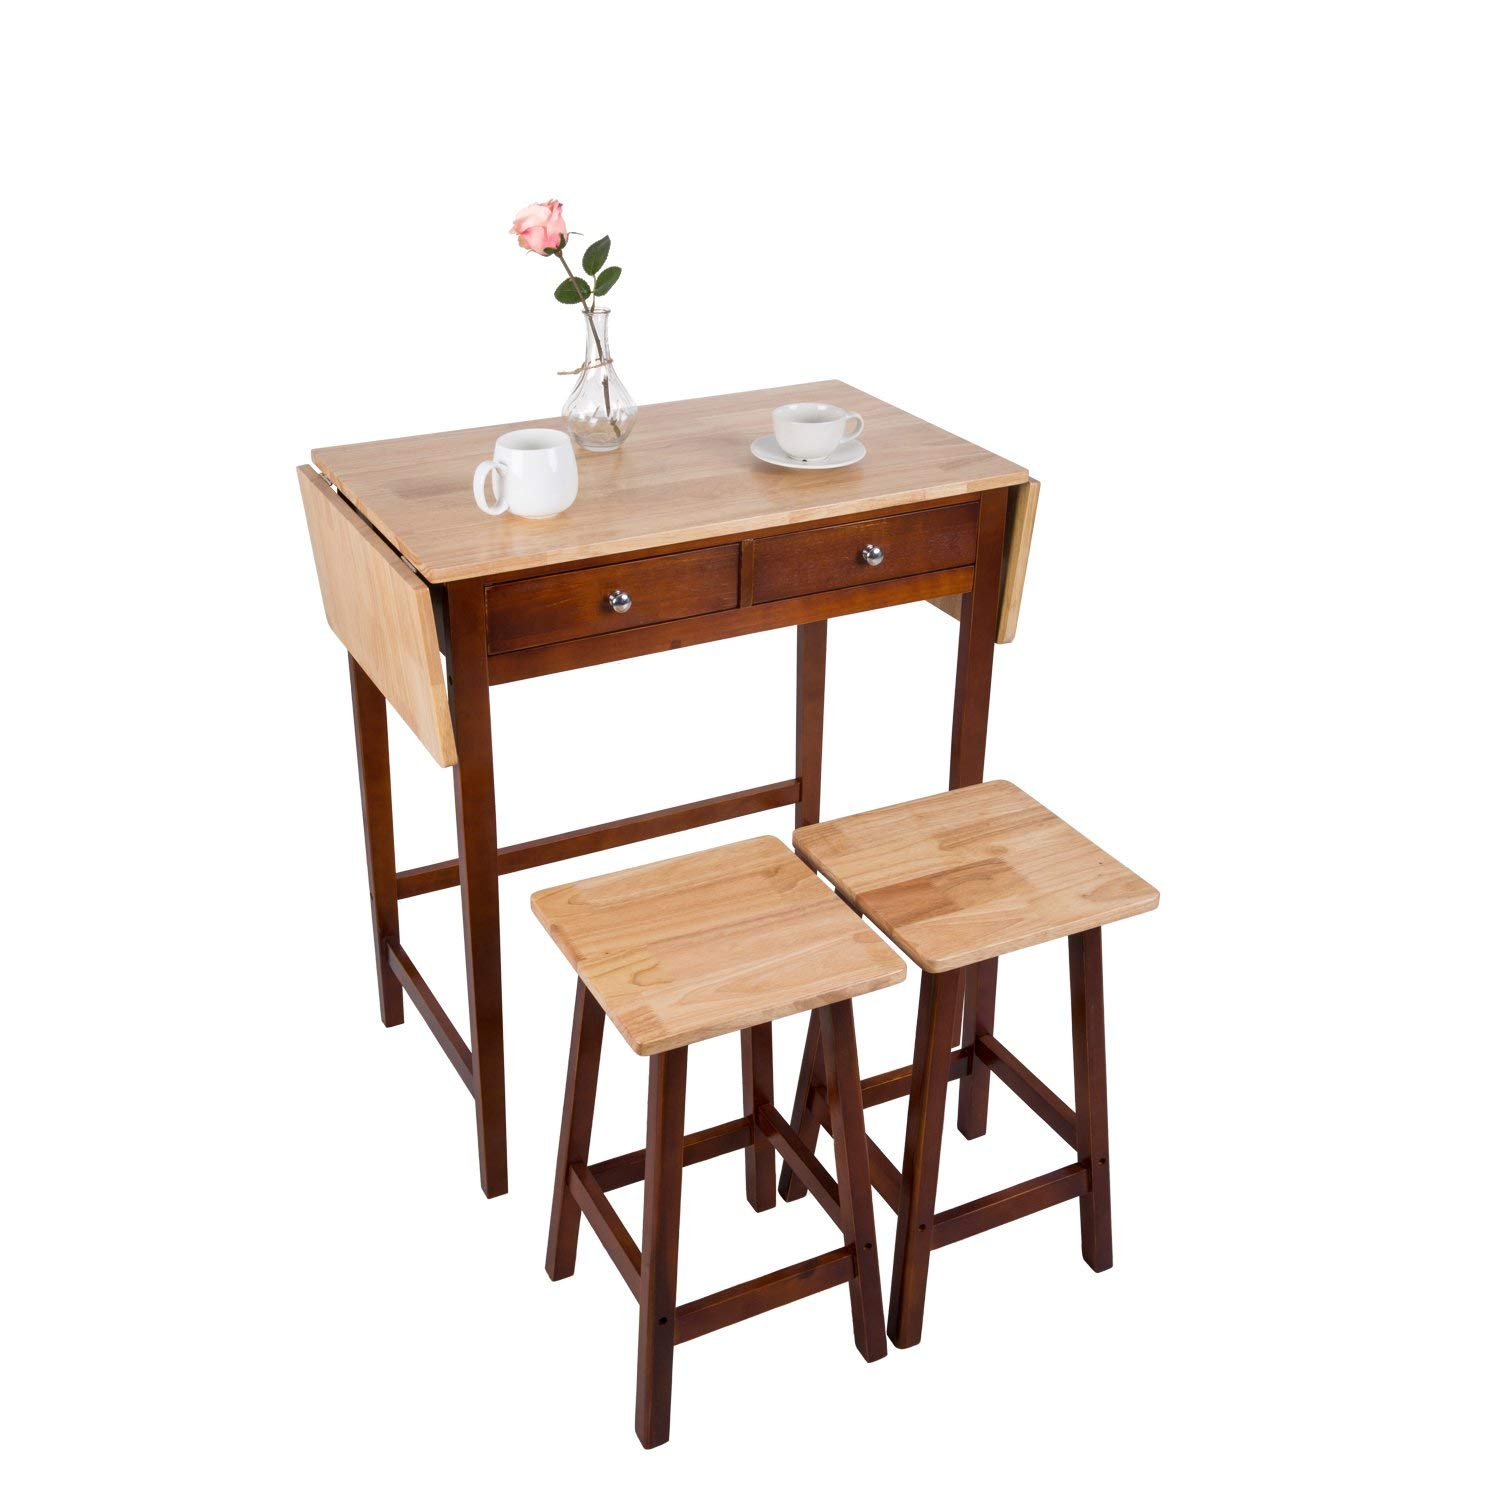 Cheap Wooden Stools Uk Find Wooden Stools Uk Deals On Line At